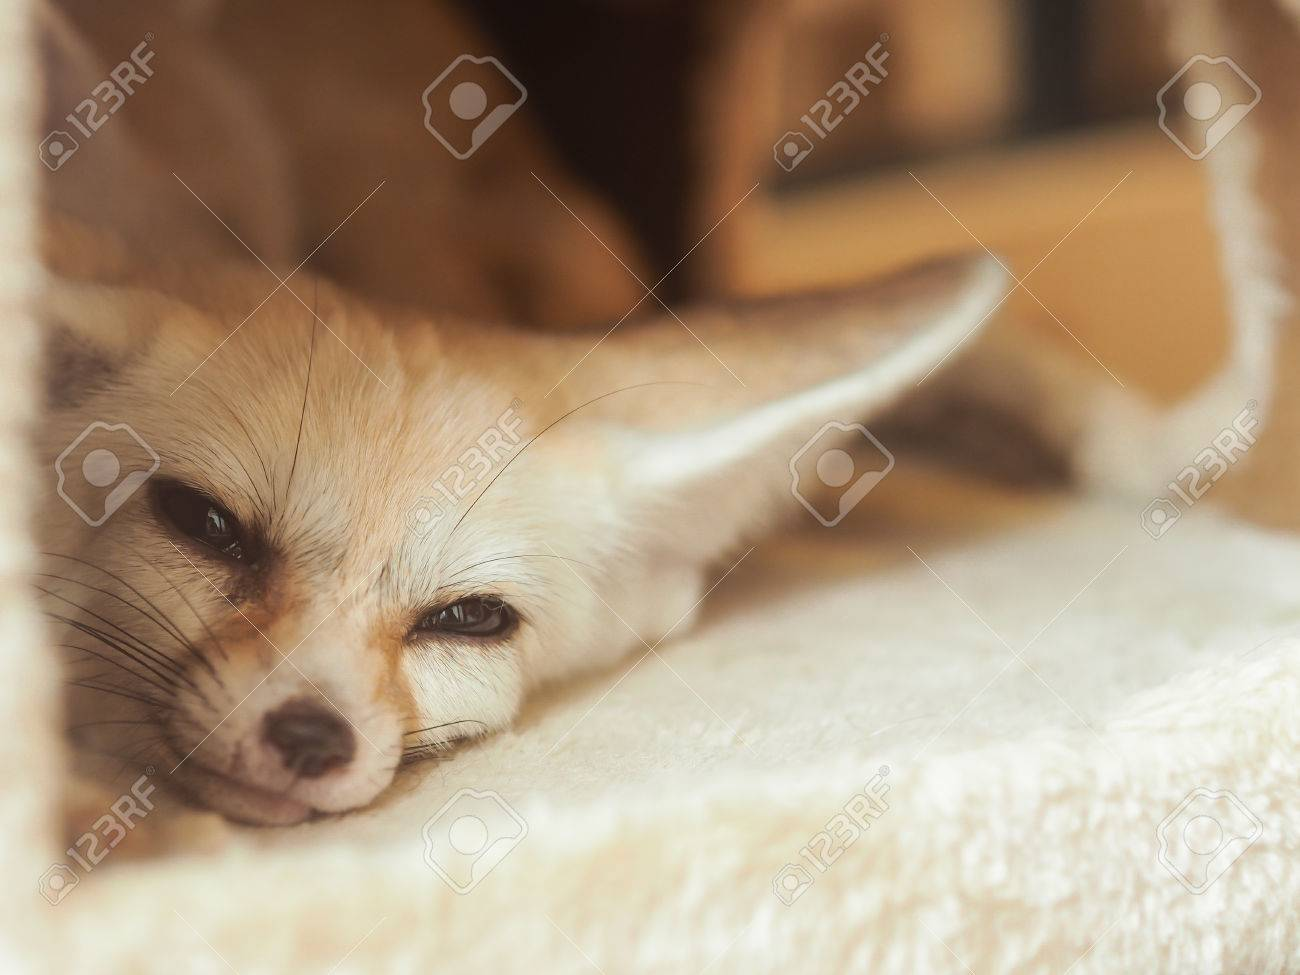 fennec fox waking up in fluffy pet house selective focus stock photo